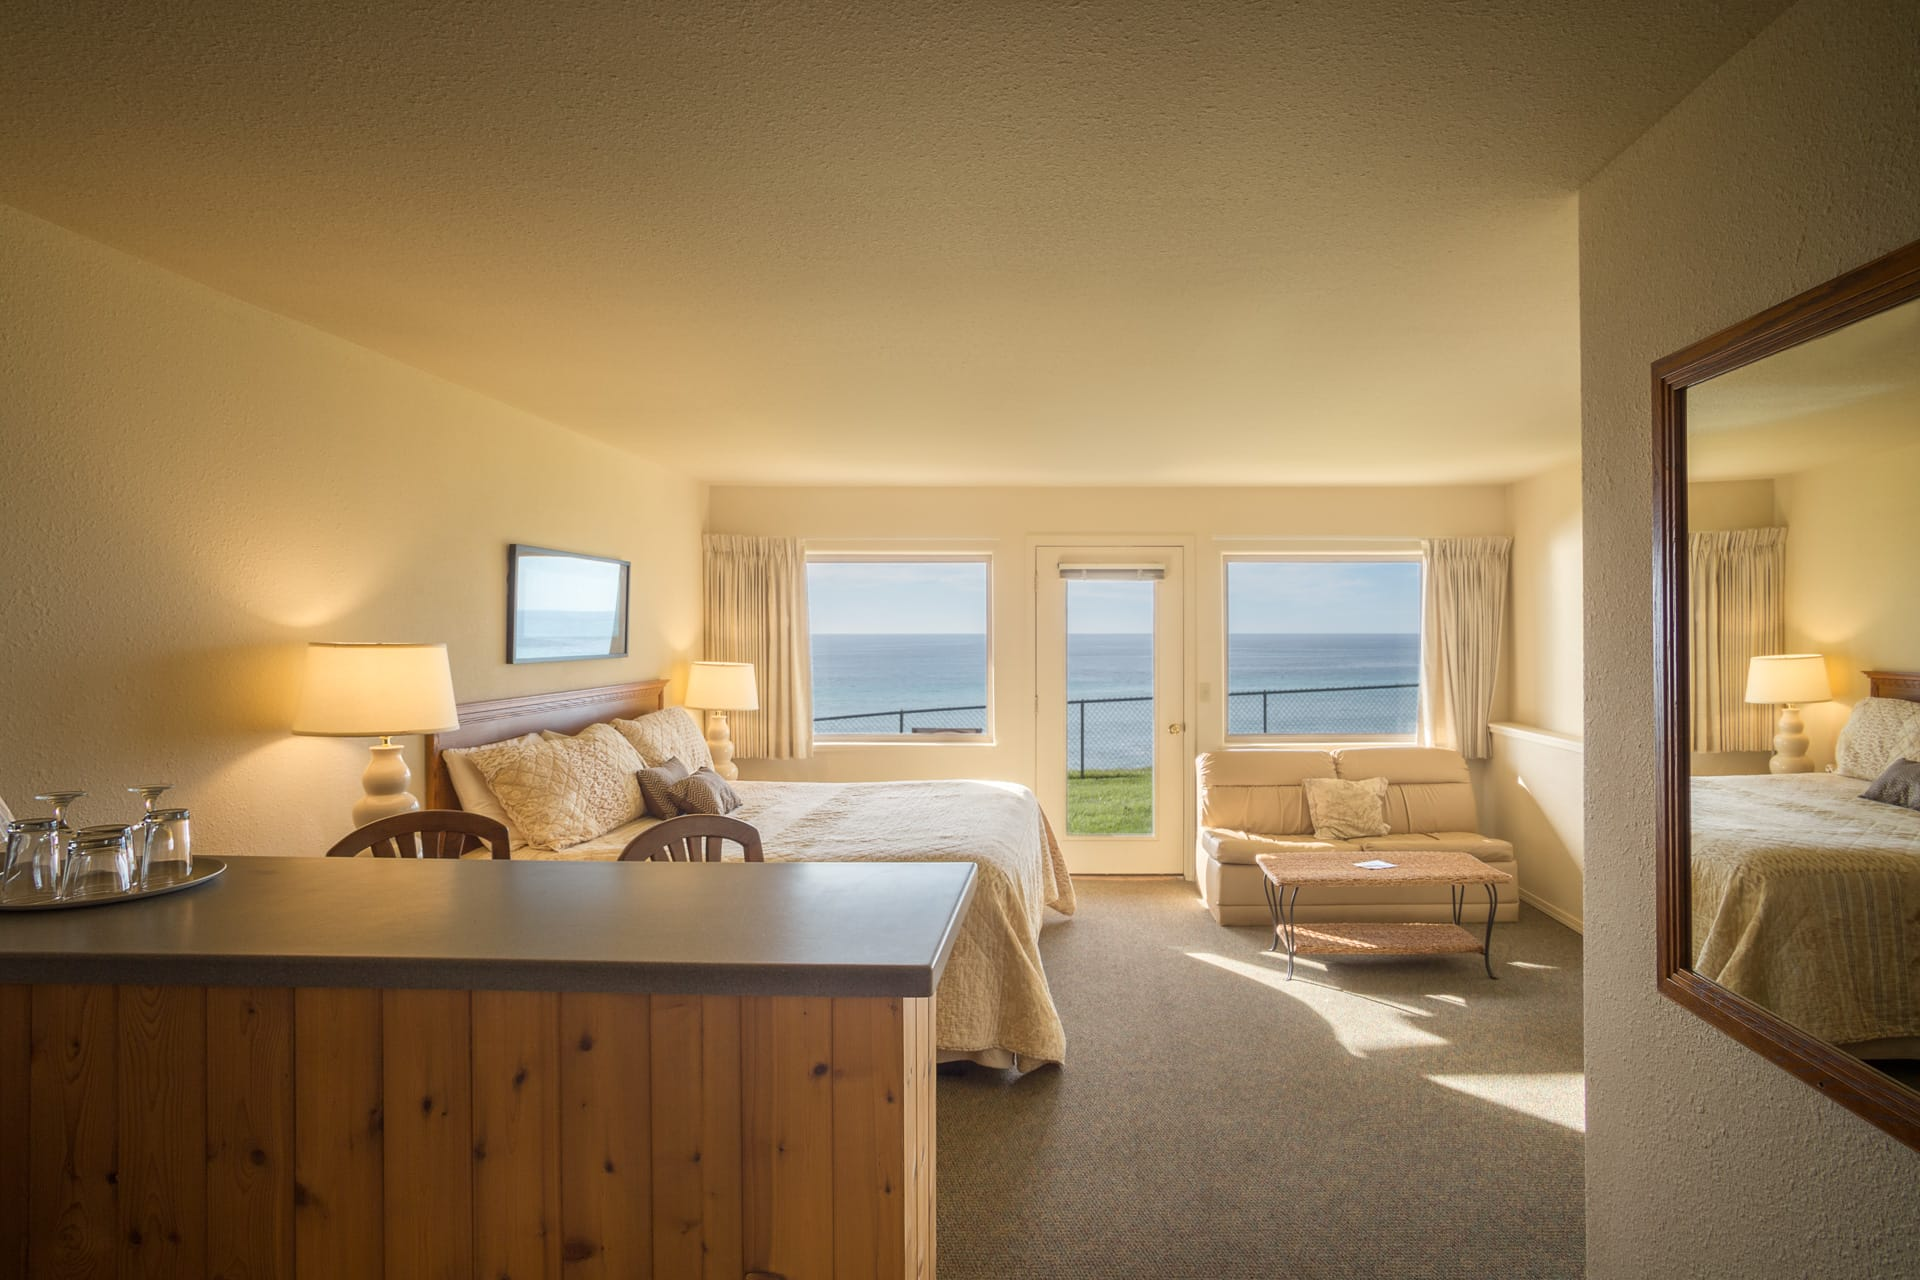 Inn of the Lost Coast Shelter Cove extended stay Mini Suite hotel room with whale watching ocean view, one King size bed, love seat sofa couch, whisk coffee table, and kitchenette with bar and bar stools.